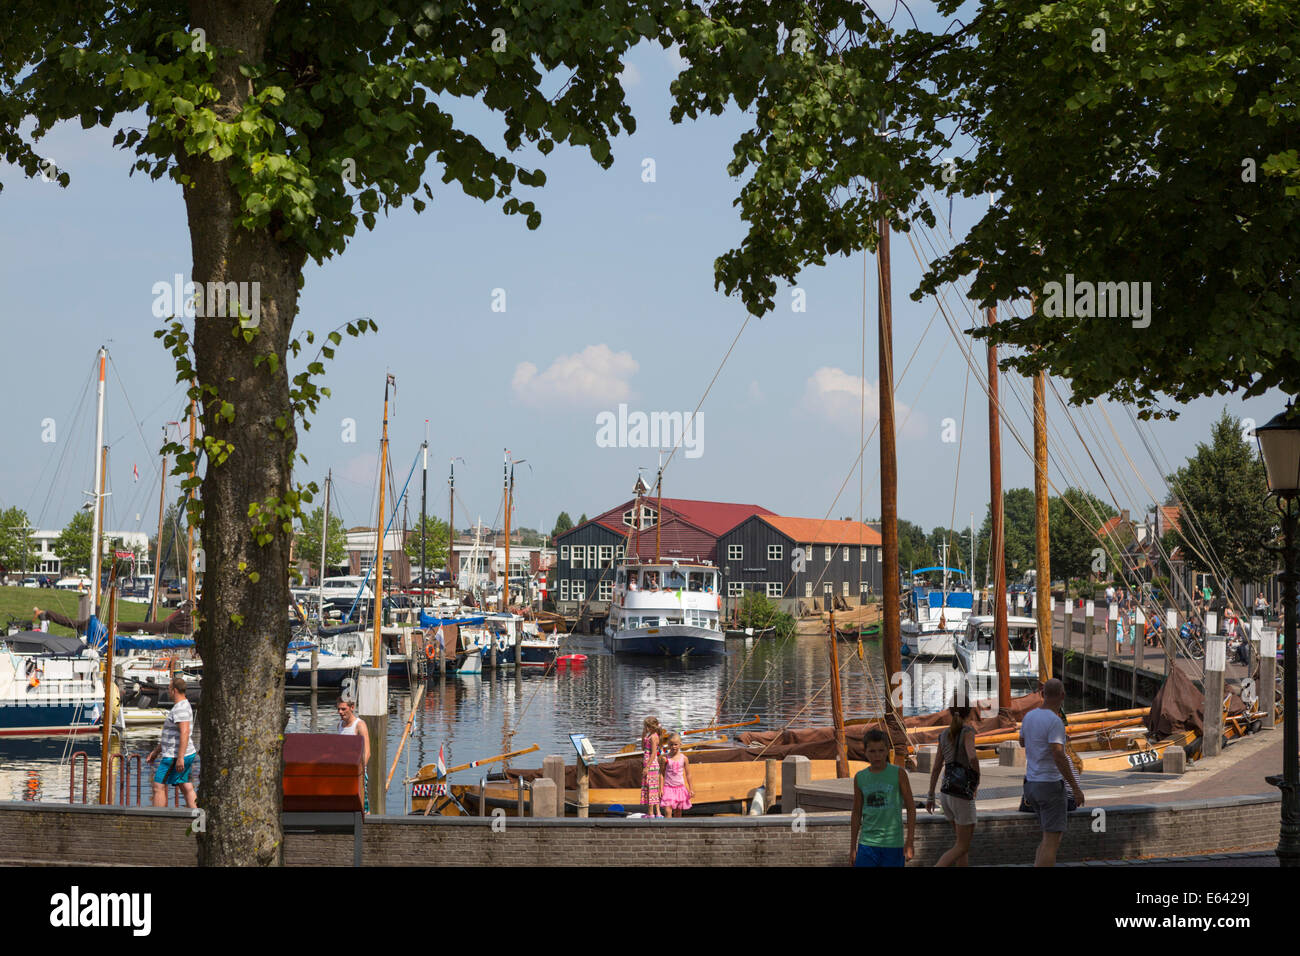 Harbor of Elburg, an old historic, touristic and hanseatic city in the province of Gelderland in the Netherlands. - Stock Image